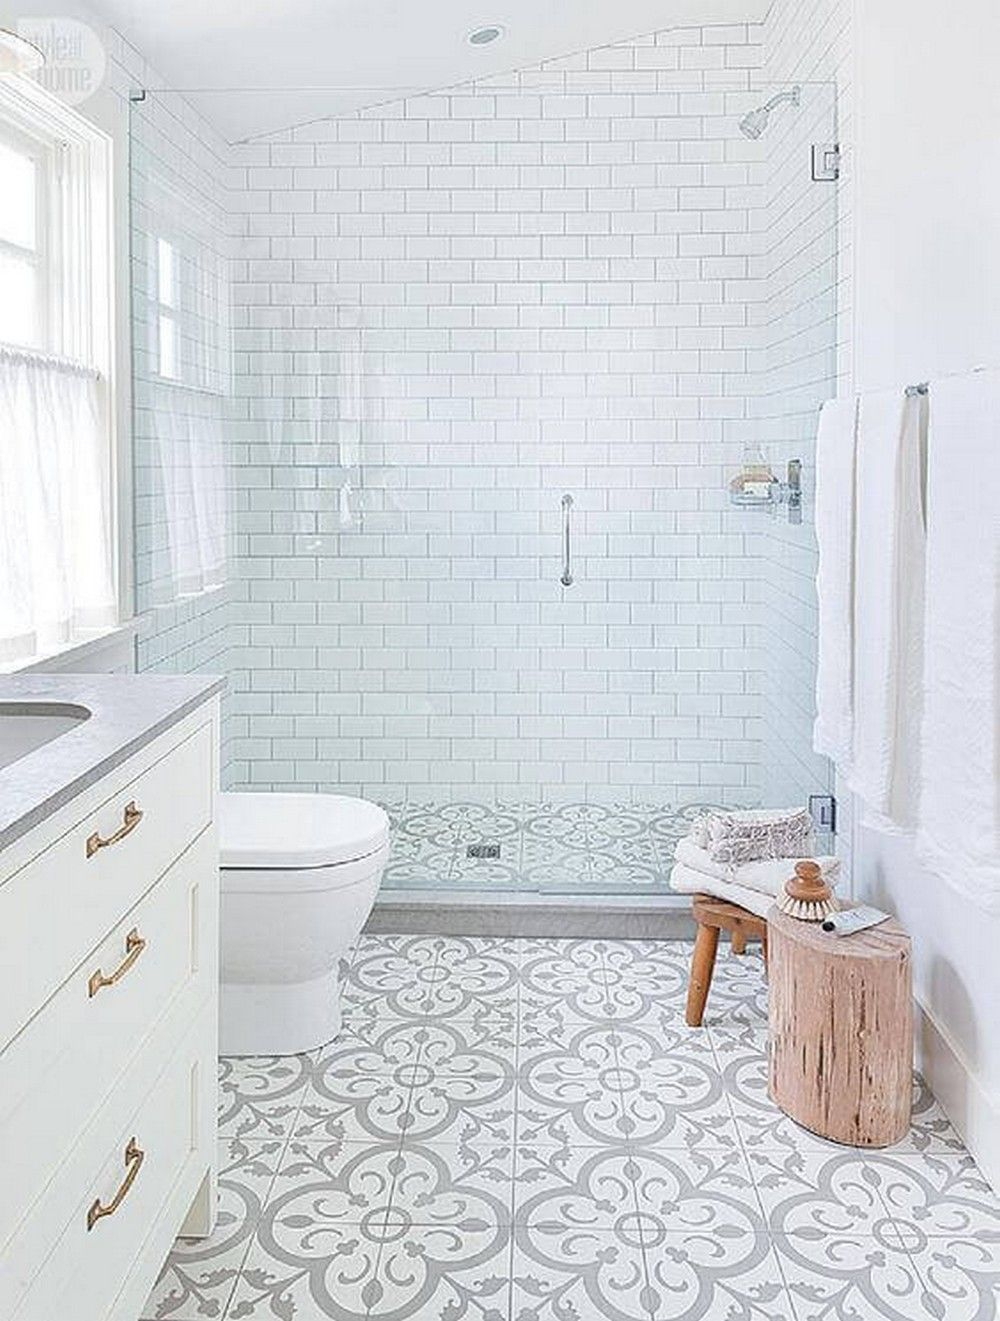 106 Clever Small Bathroom Decorating Ideas  Small Bathroom Cool Clever Small Bathroom Designs Decorating Inspiration